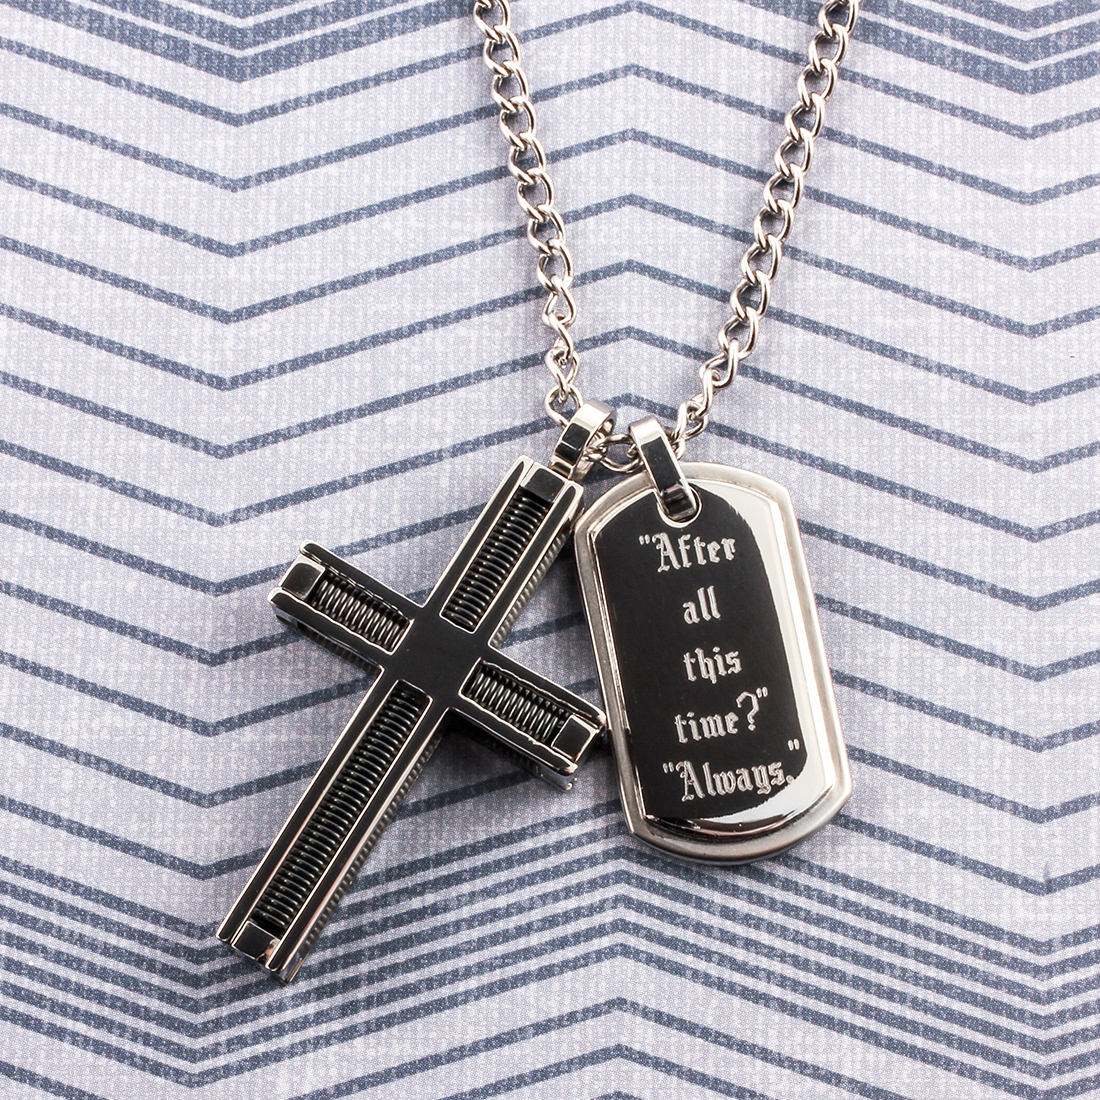 Spring Cross and Tag Pendant Set on Chain